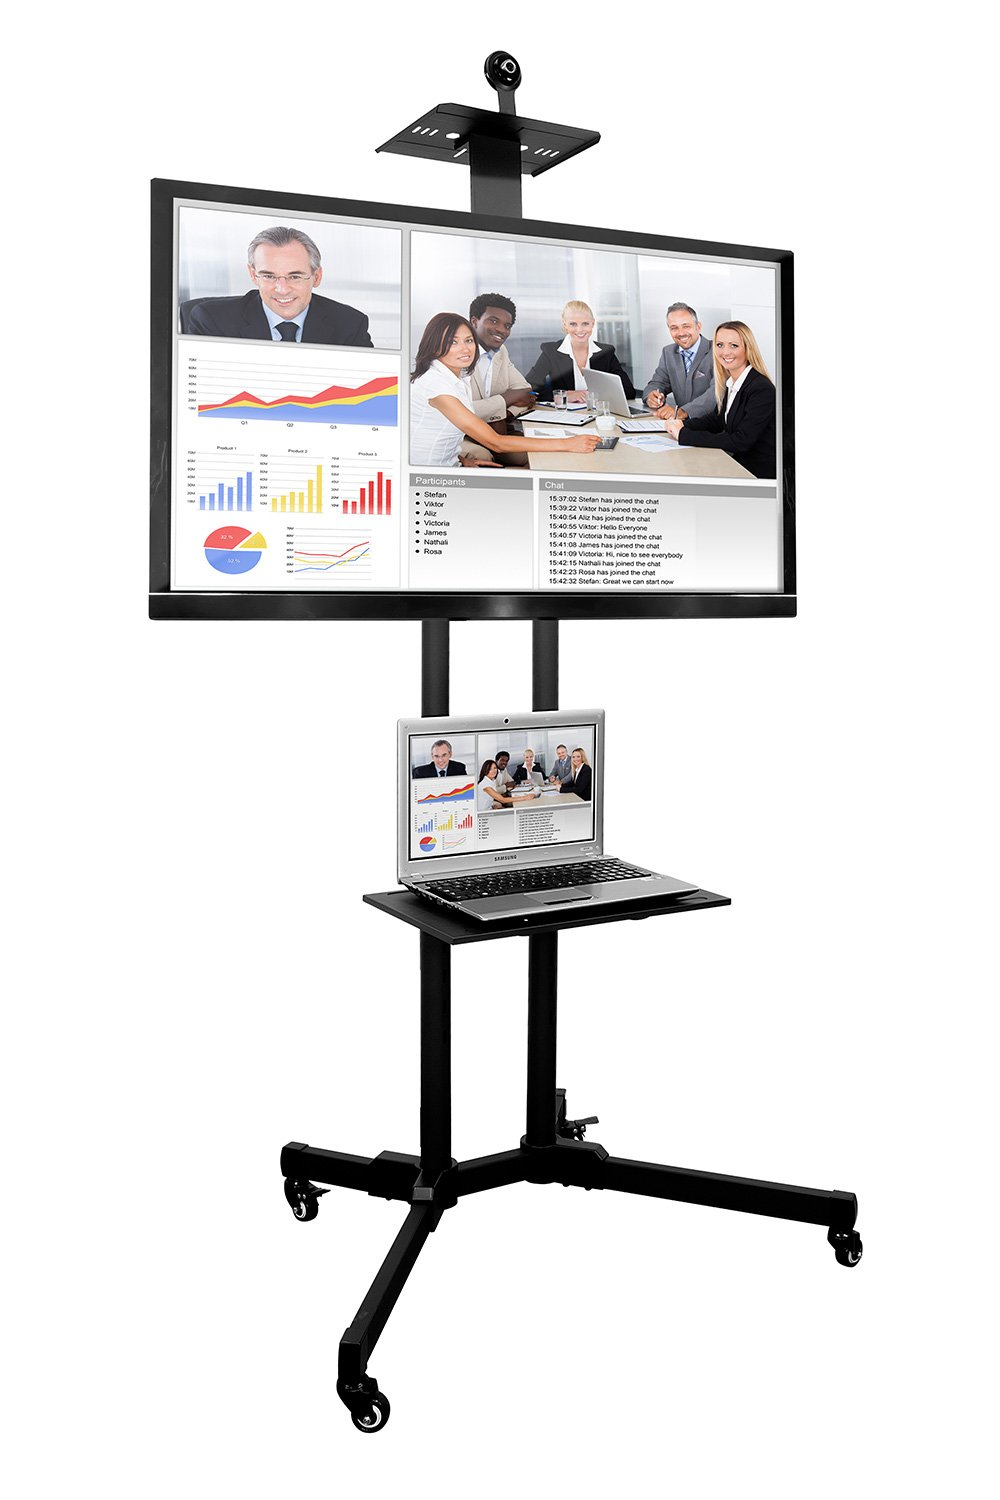 Mount-It MI-876 TV Cart Mobile TV Stand Wheeled Height Adjustable Flat Screen Television Stands with Rolling Casters and Shelf, VESA Compatible TV Mount Bracket Fits Displays 37 to 70 Inch, 110 Lbs